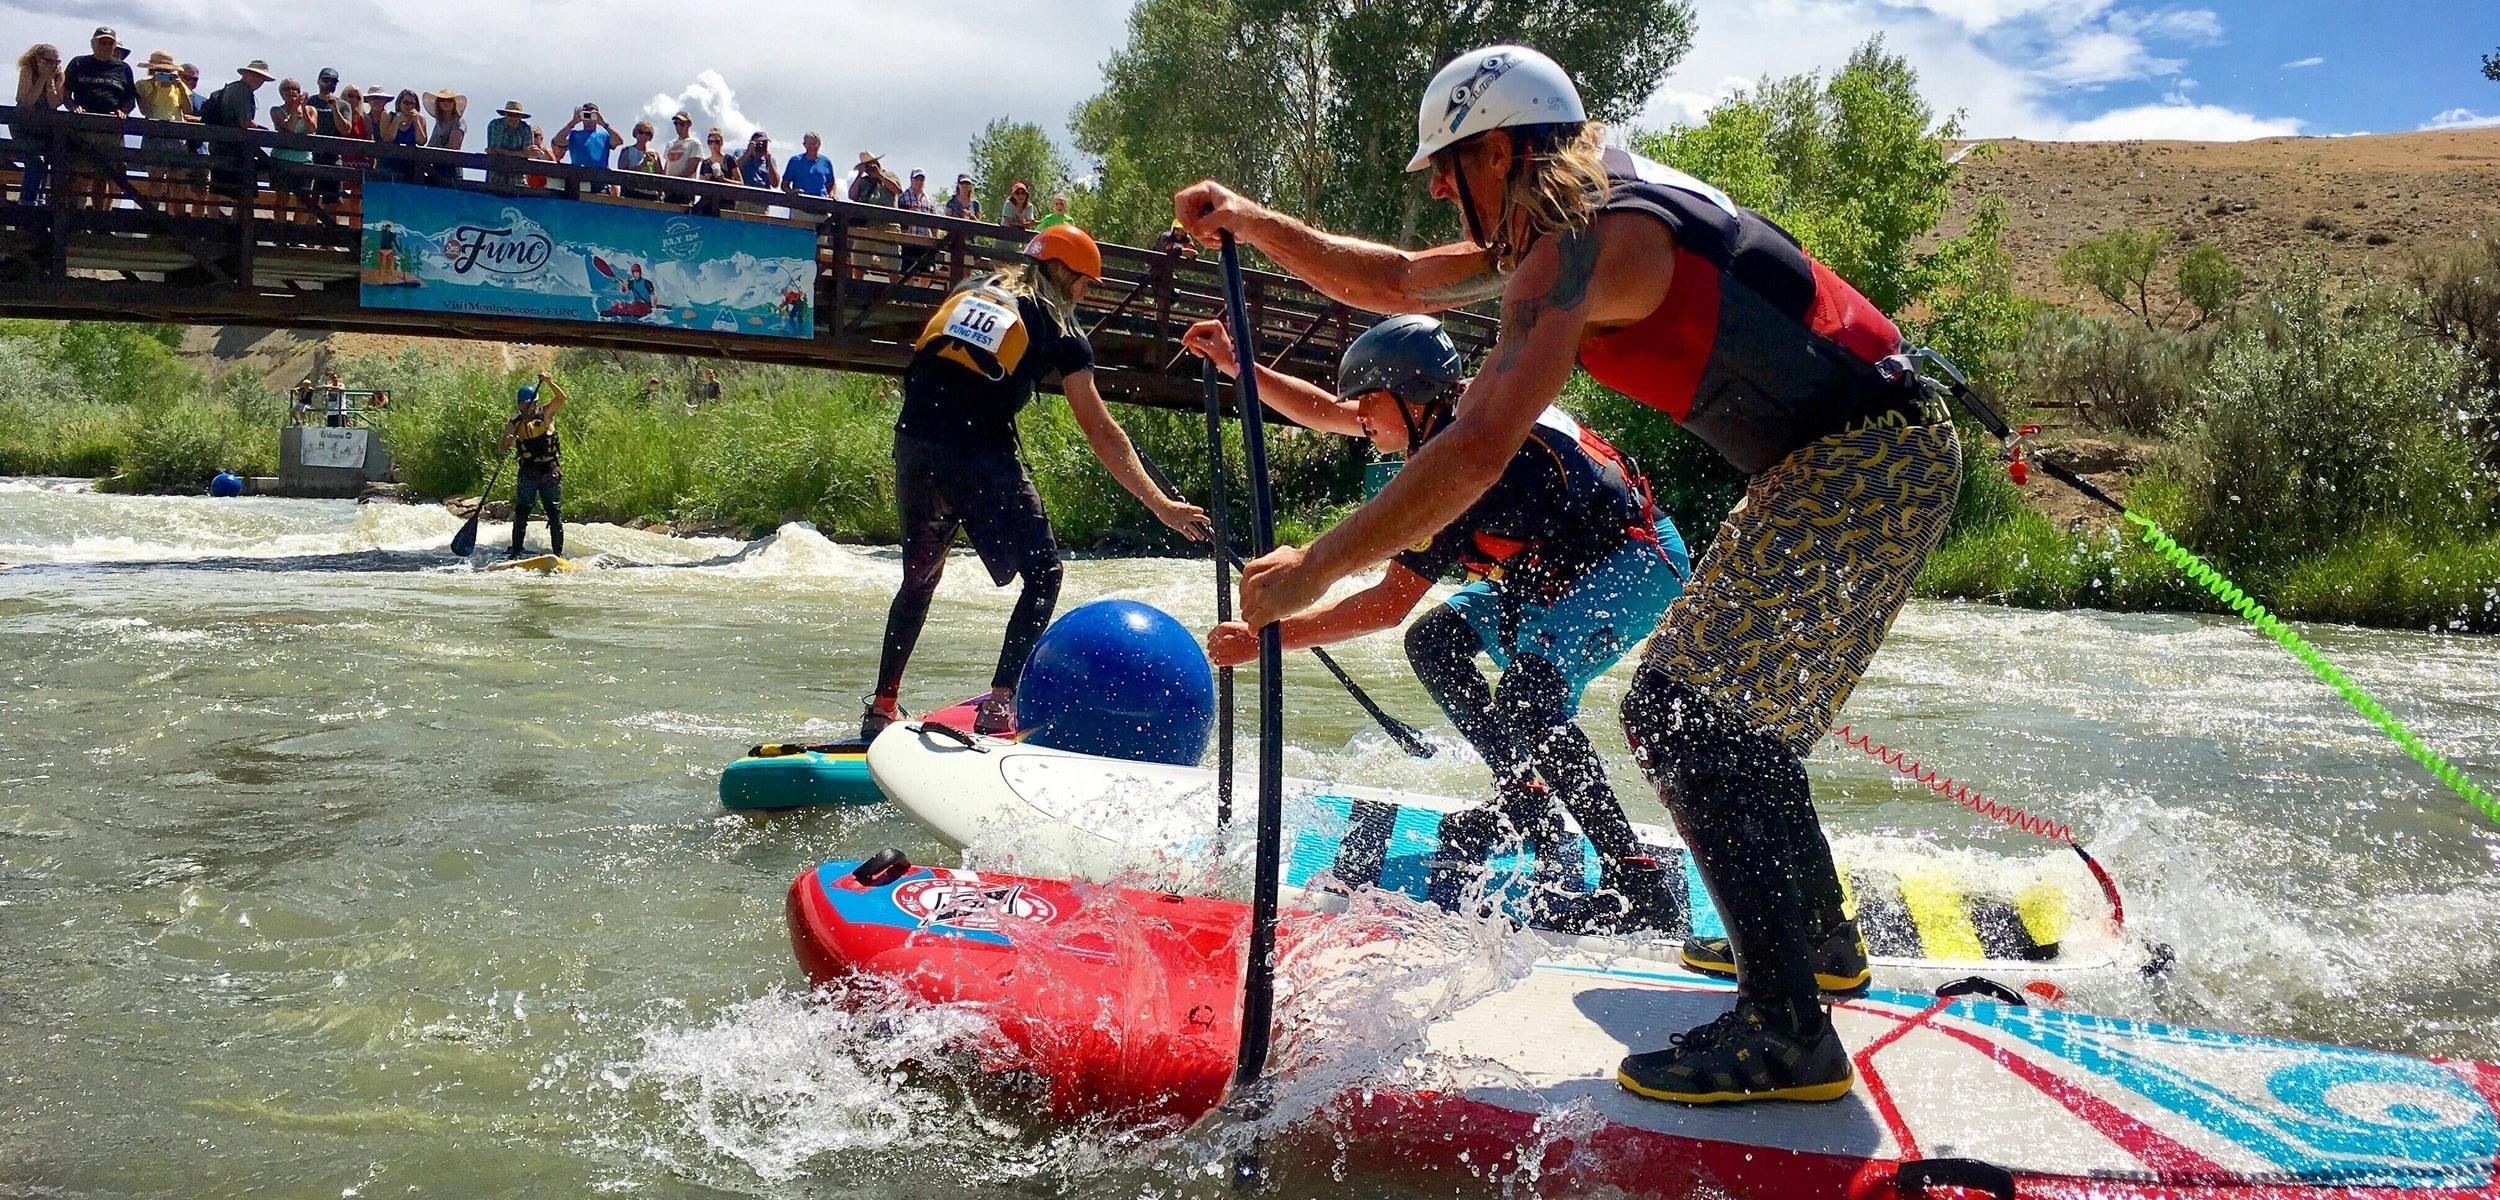 Stand up paddle board SUP Cross at the Montrose FUNCFest 2017